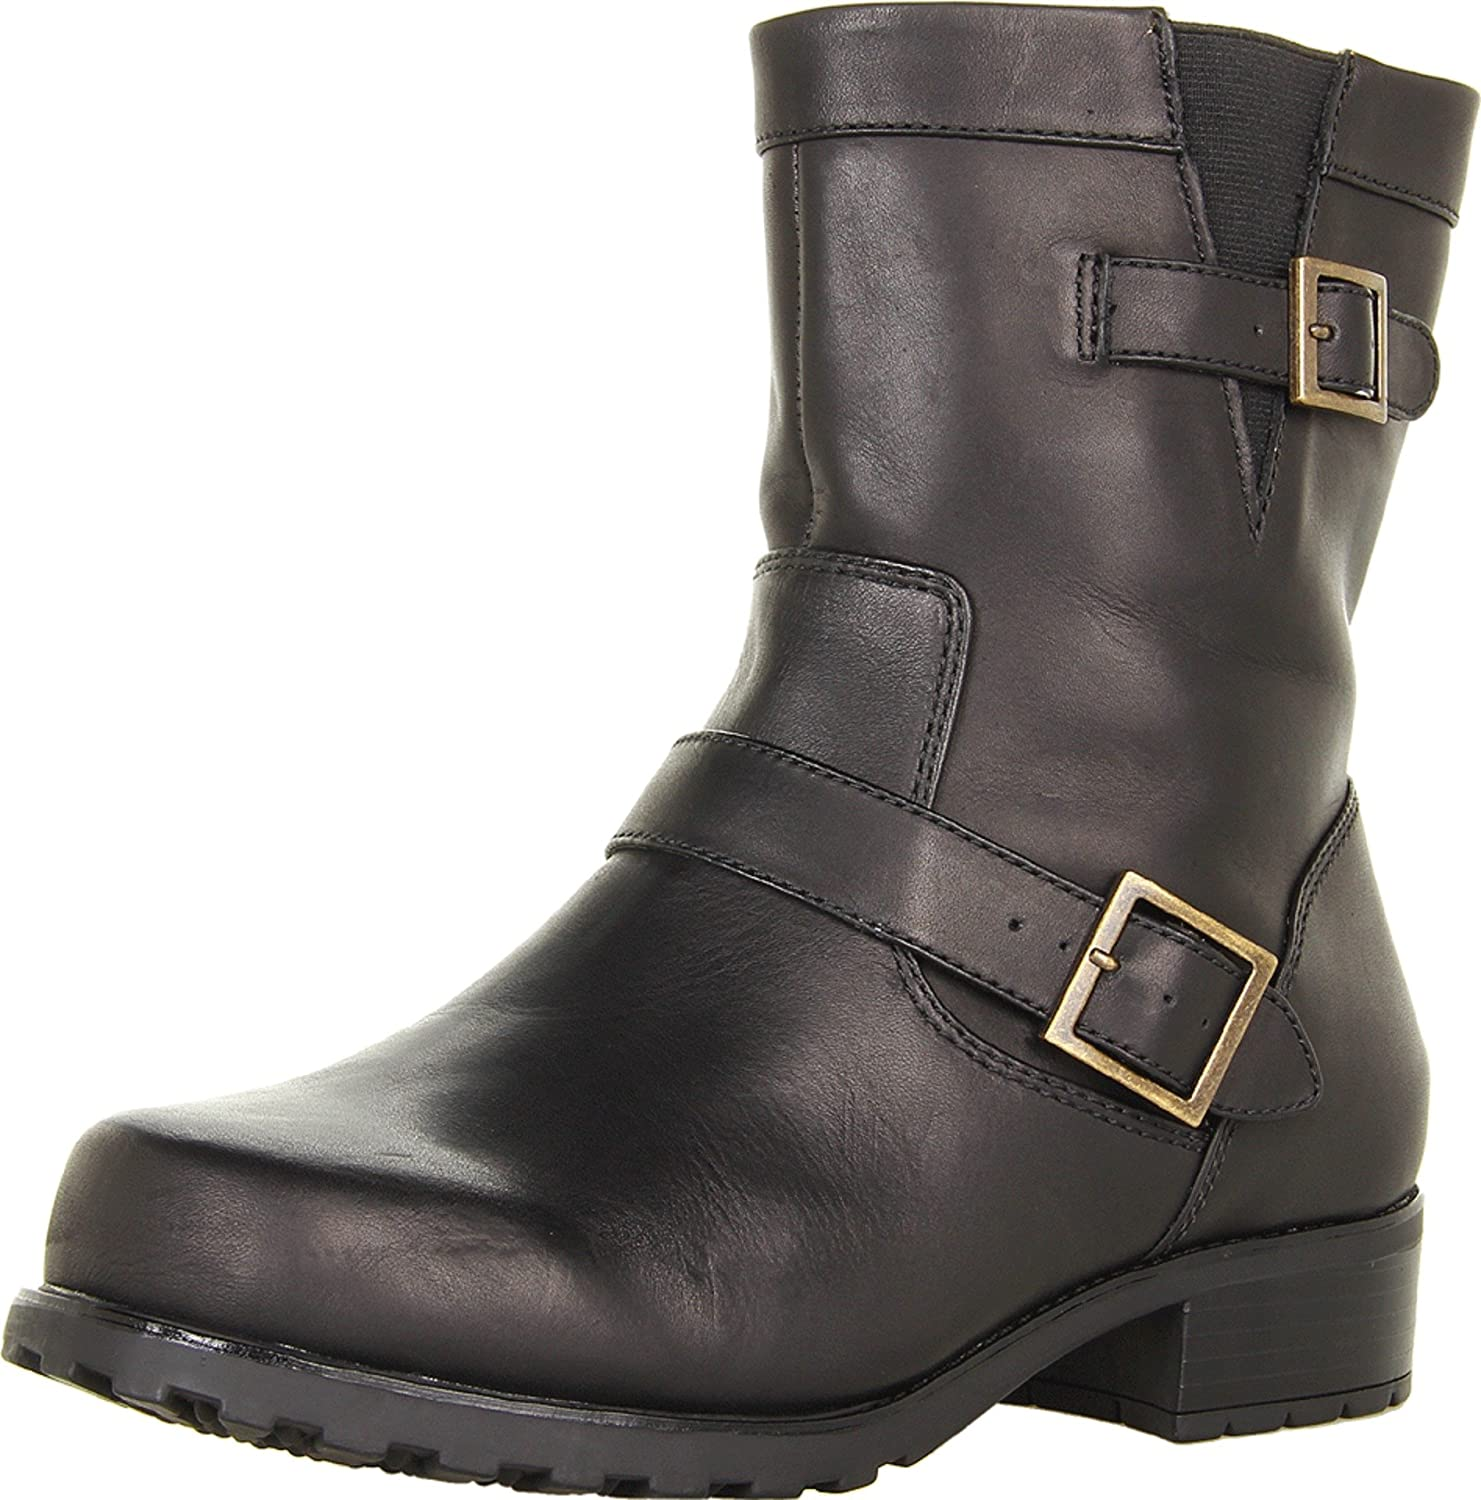 SoftWalk Women's Bellville Boot B0071BFHTU 12 W US|Black